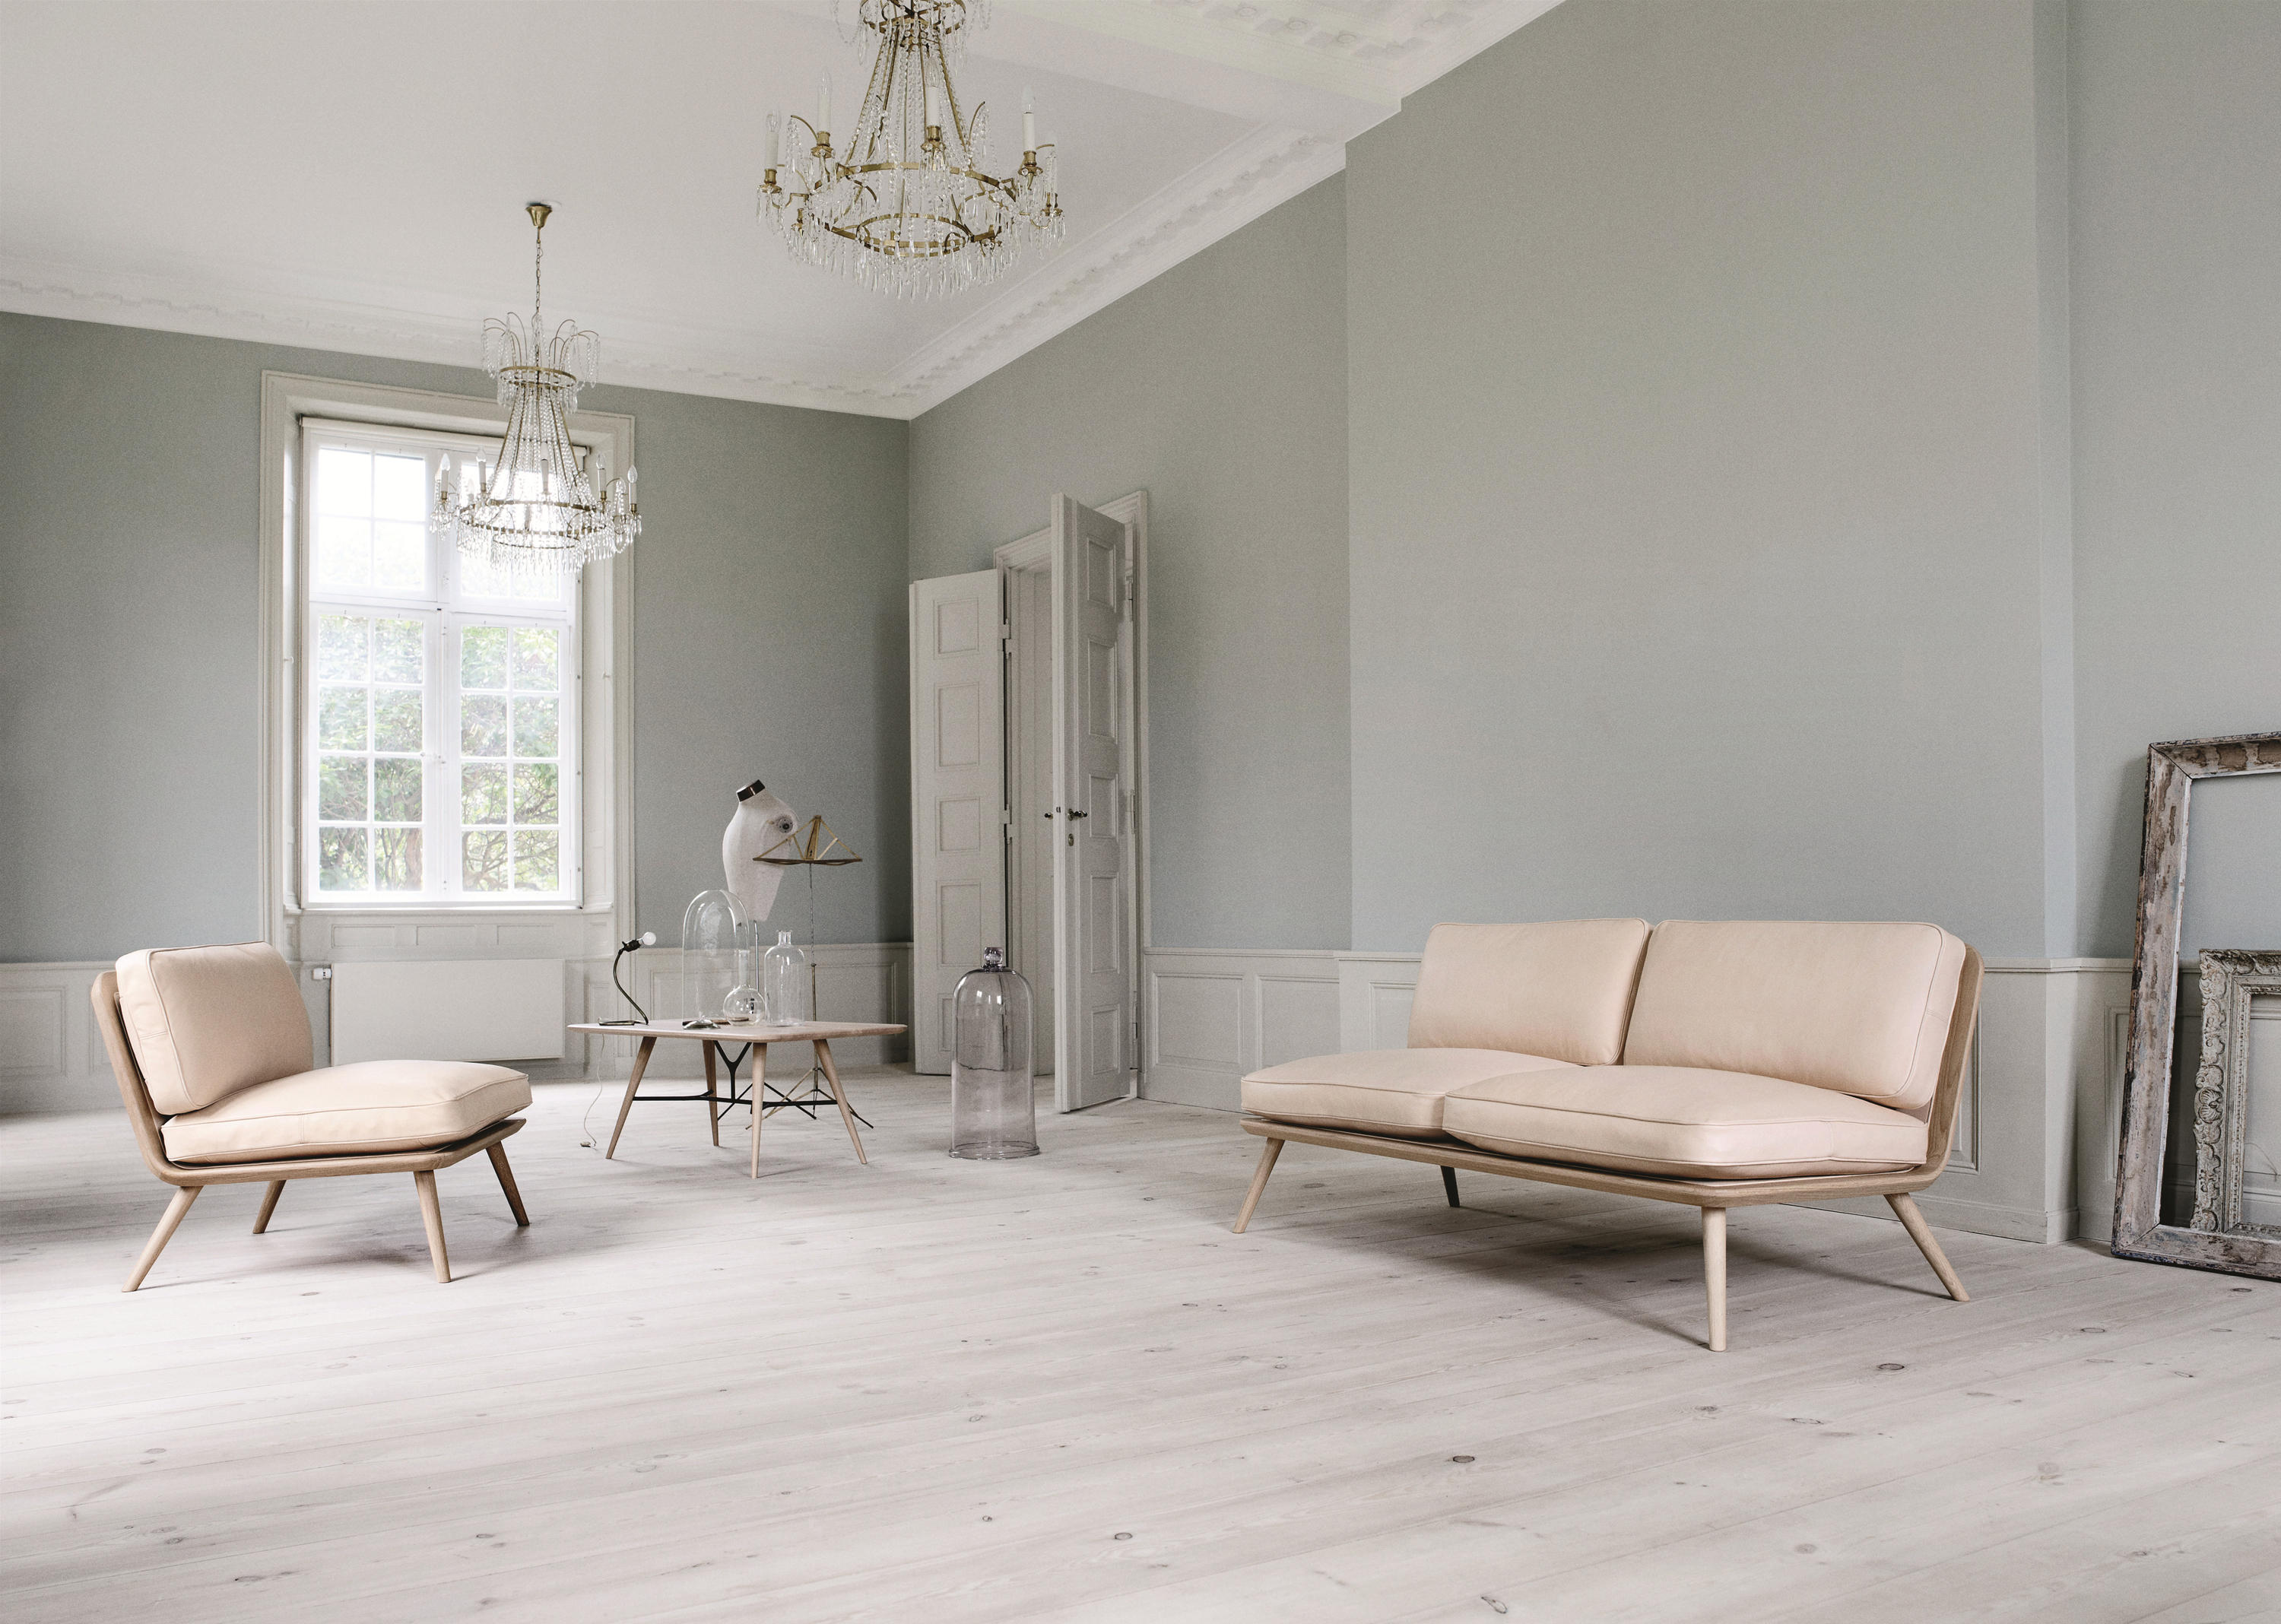 Spine lounge chair lounge chairs from fredericia for Deco mur interieur maison